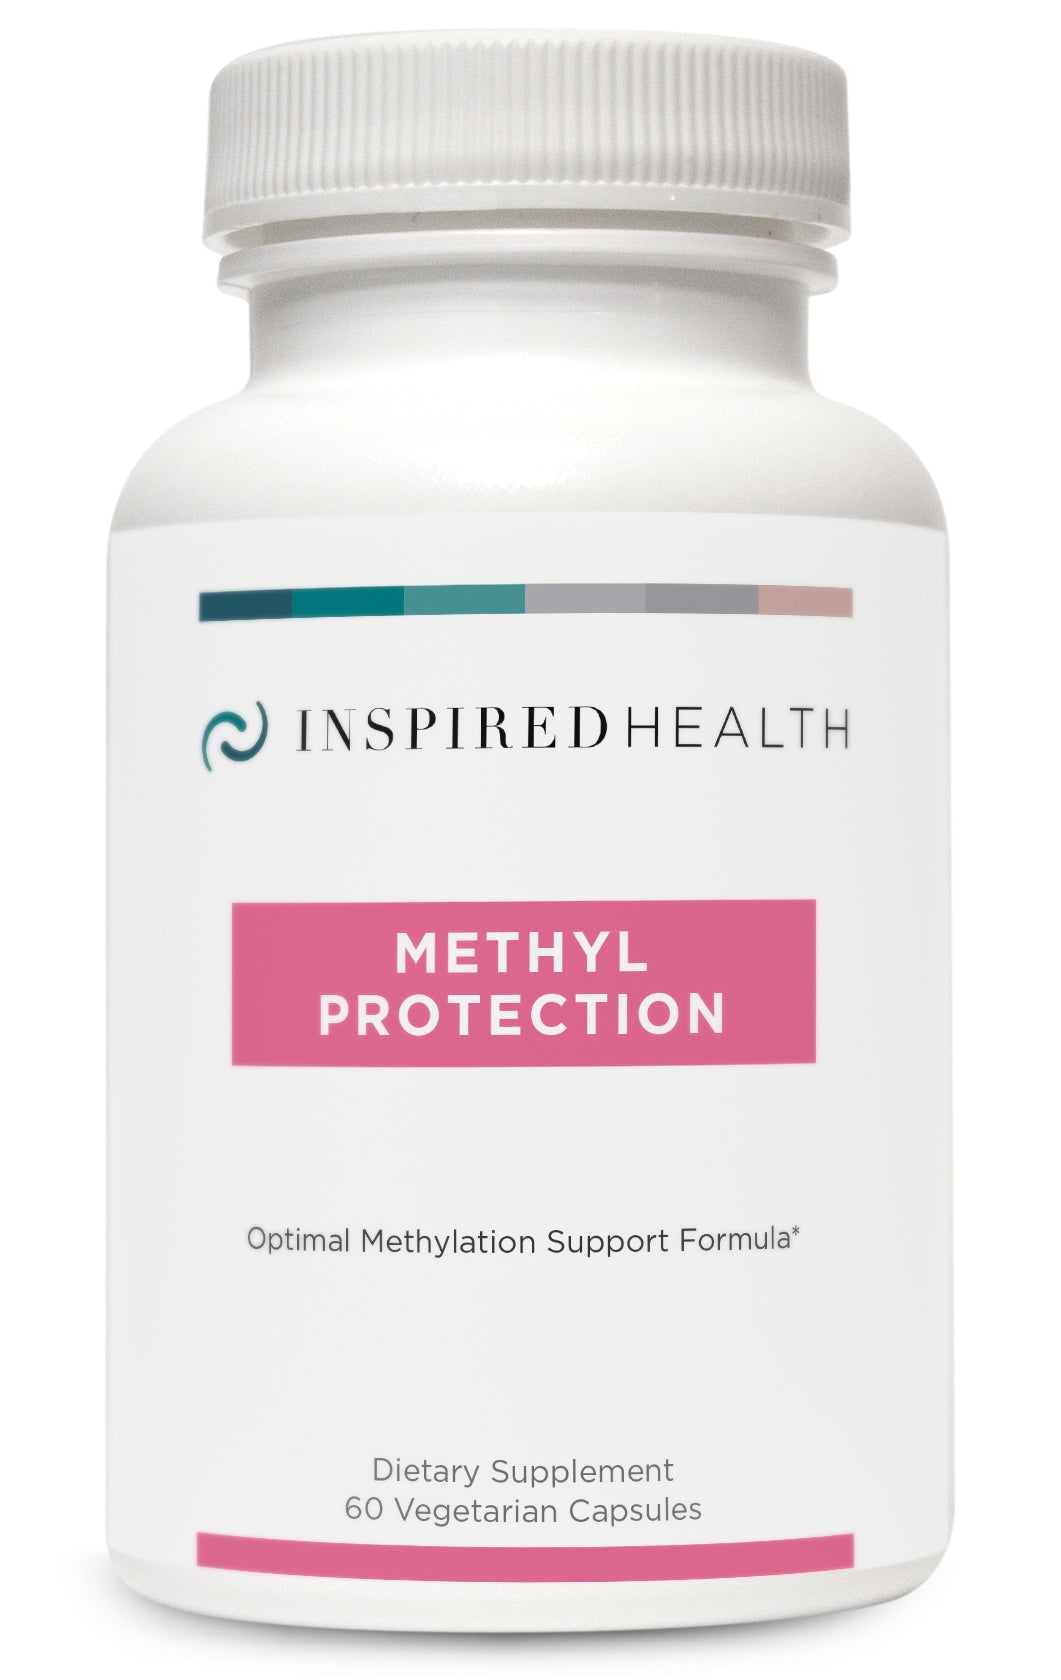 Methyl Protection